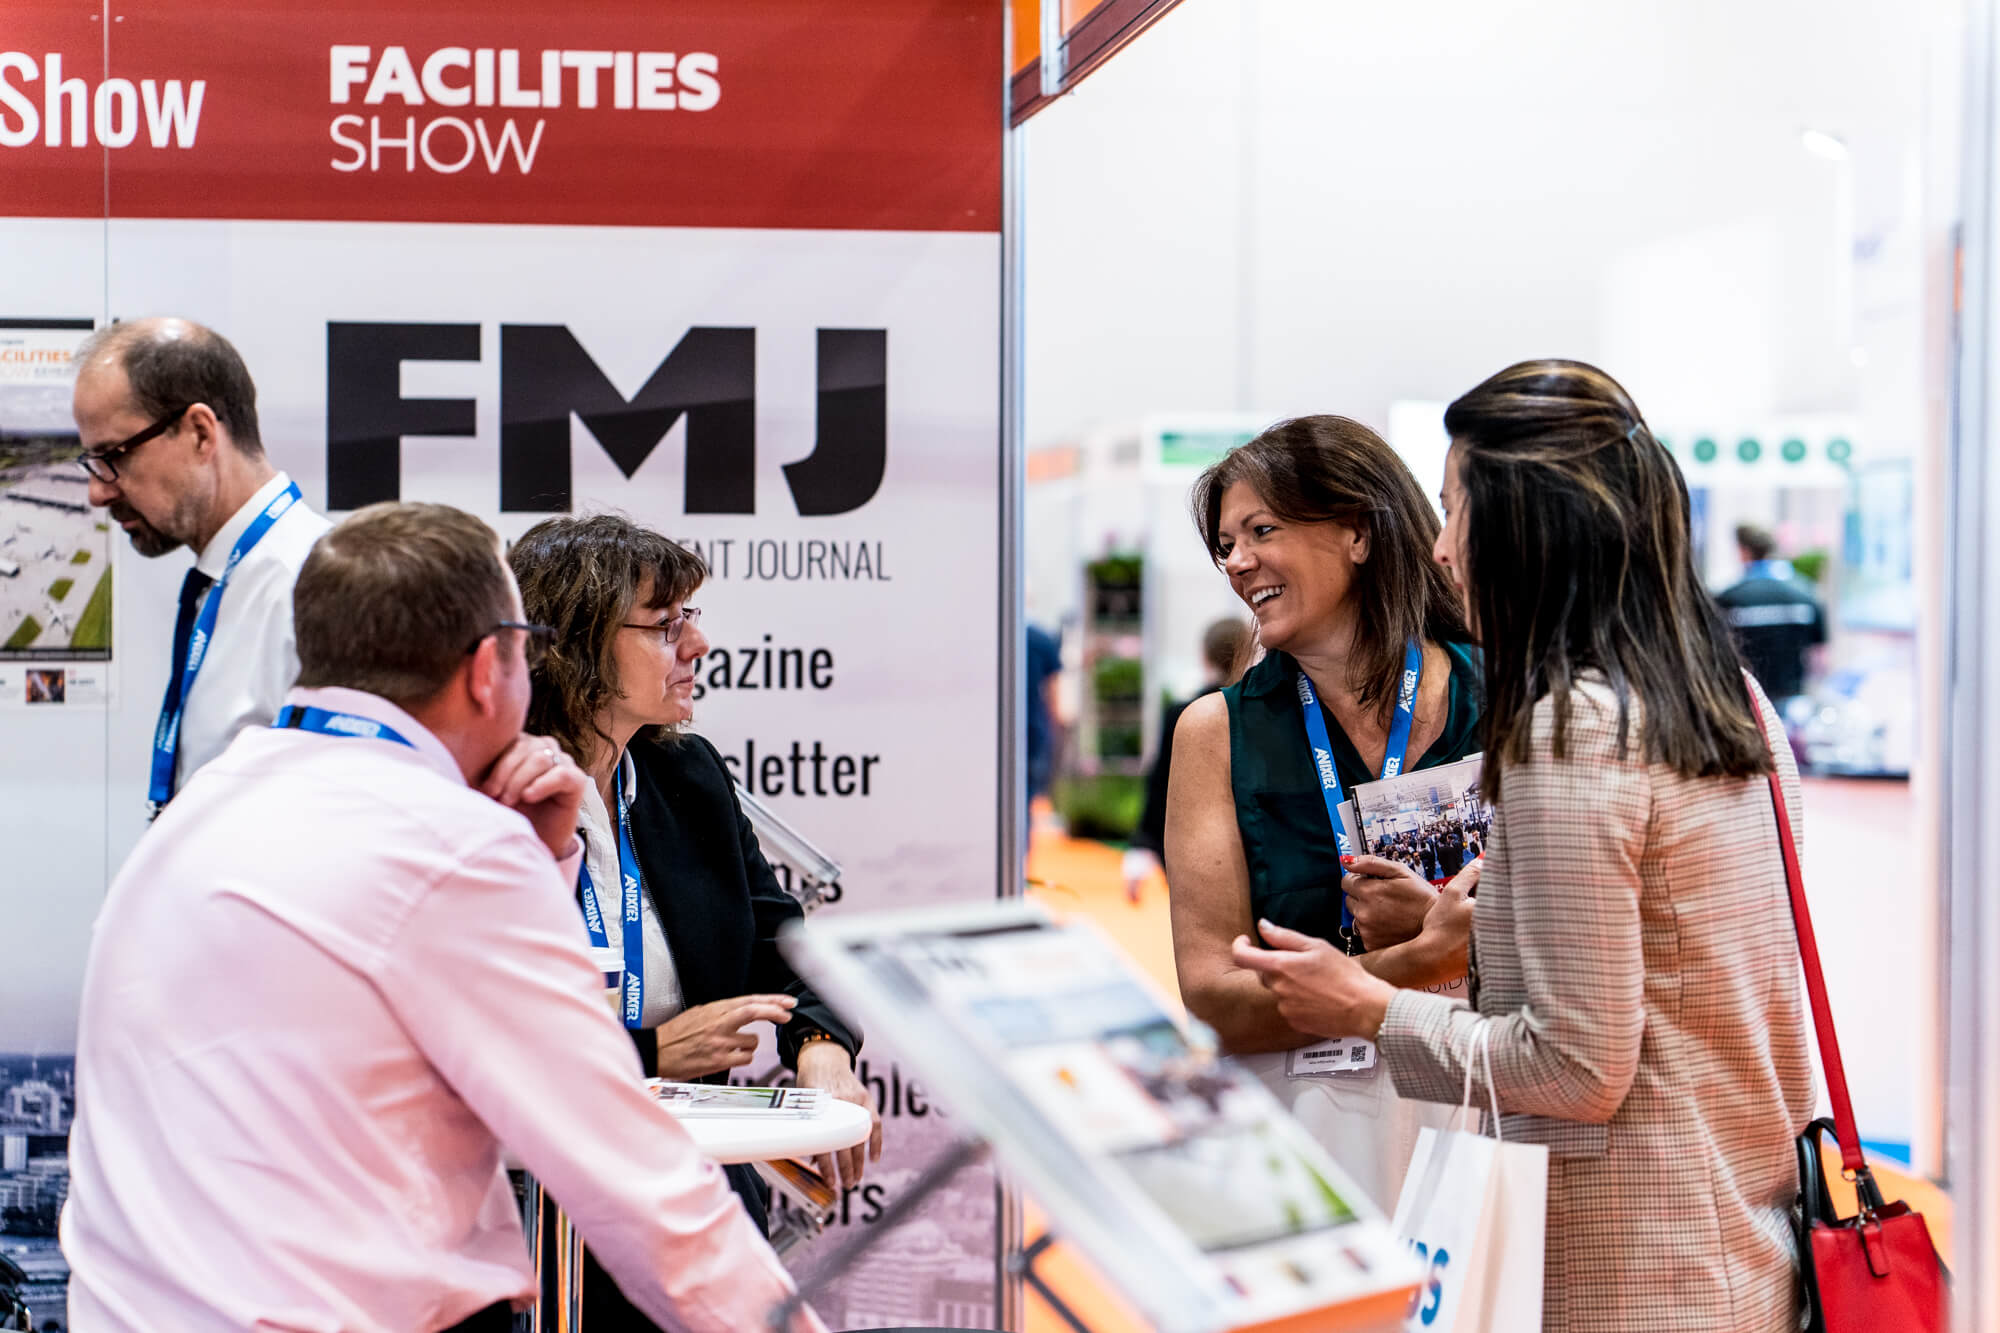 An exhibitor and visitor having a conversation at Facilities Show 2019